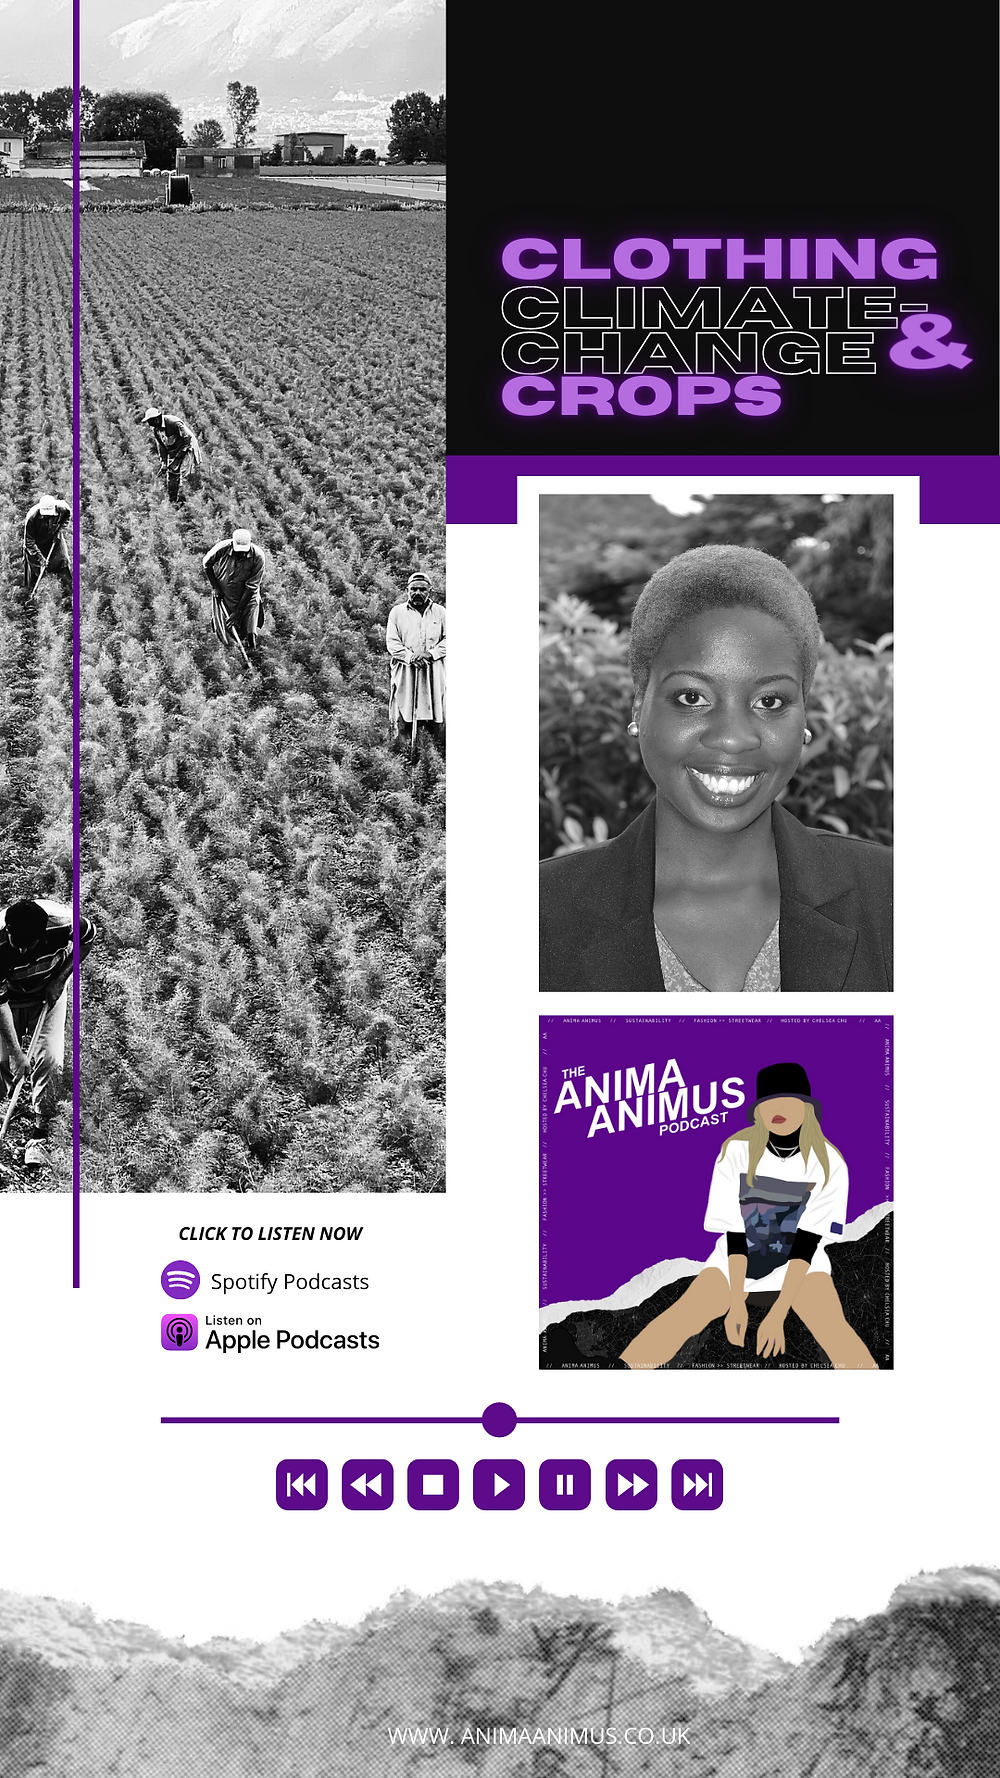 A fashion sustainability podcast by Chelsea from The ANIMA ANIMUS Podcast, featuring Climate-change adaptation specialist Ntaba Francis.